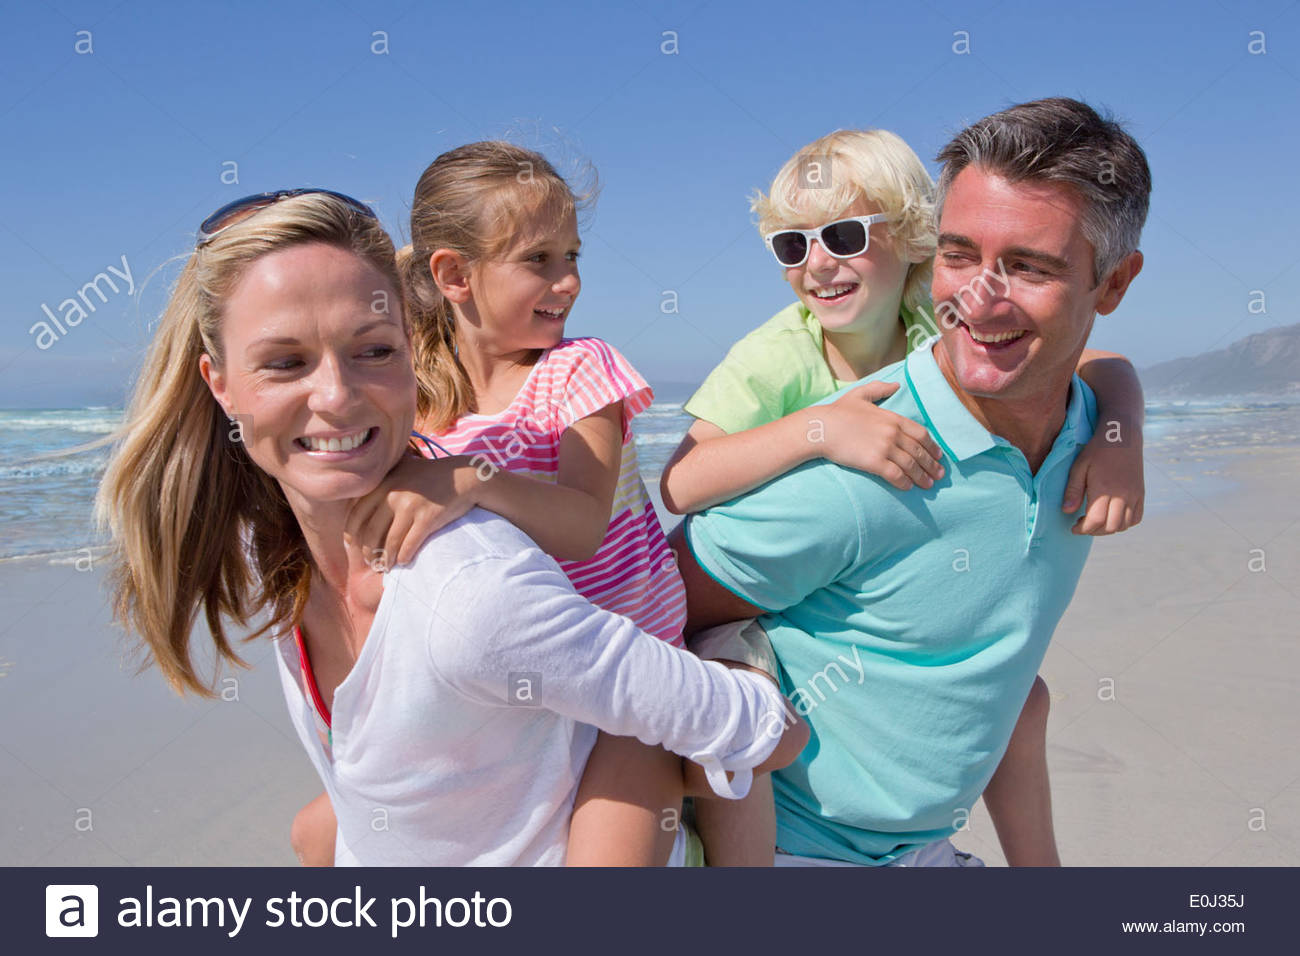 Parents piggybacking children on sunny beach - Stock Image